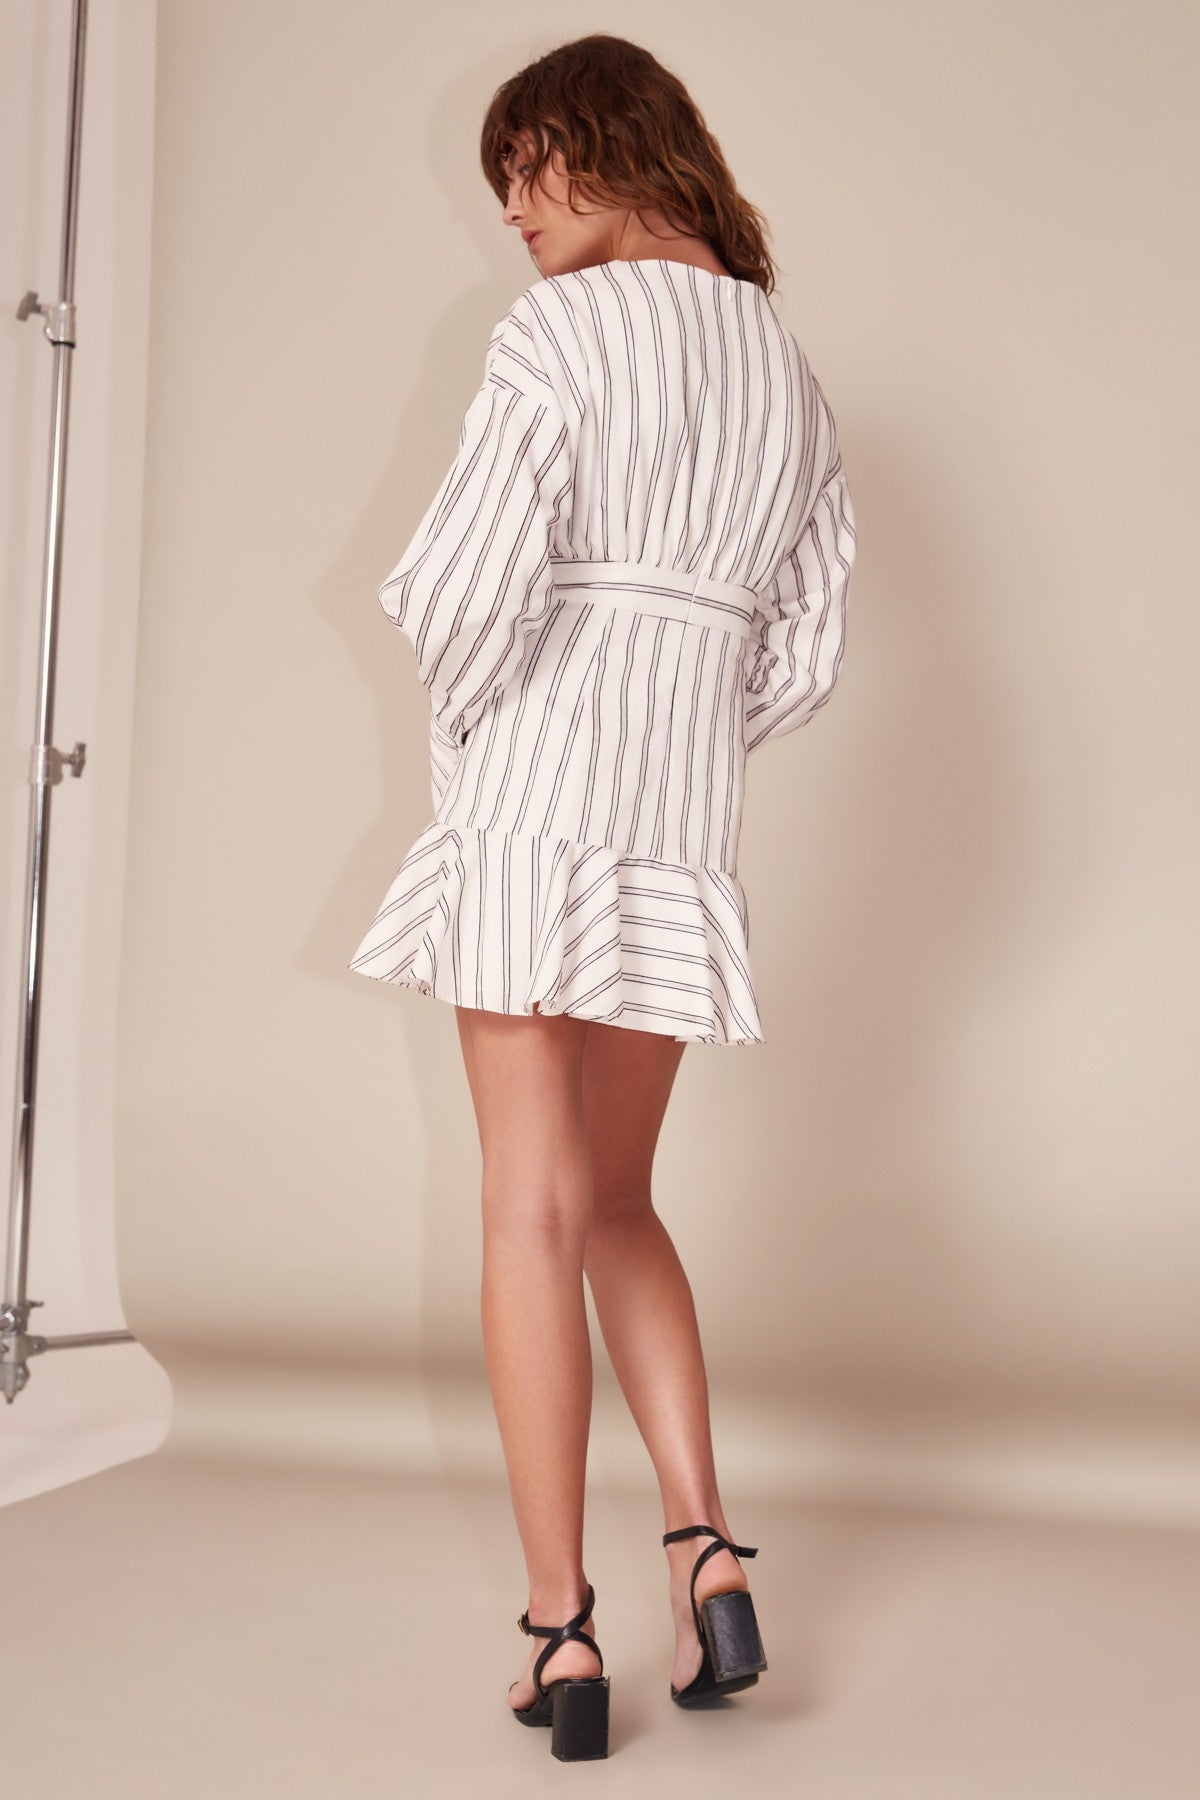 MOMENTS APART DRESS ivory stripe